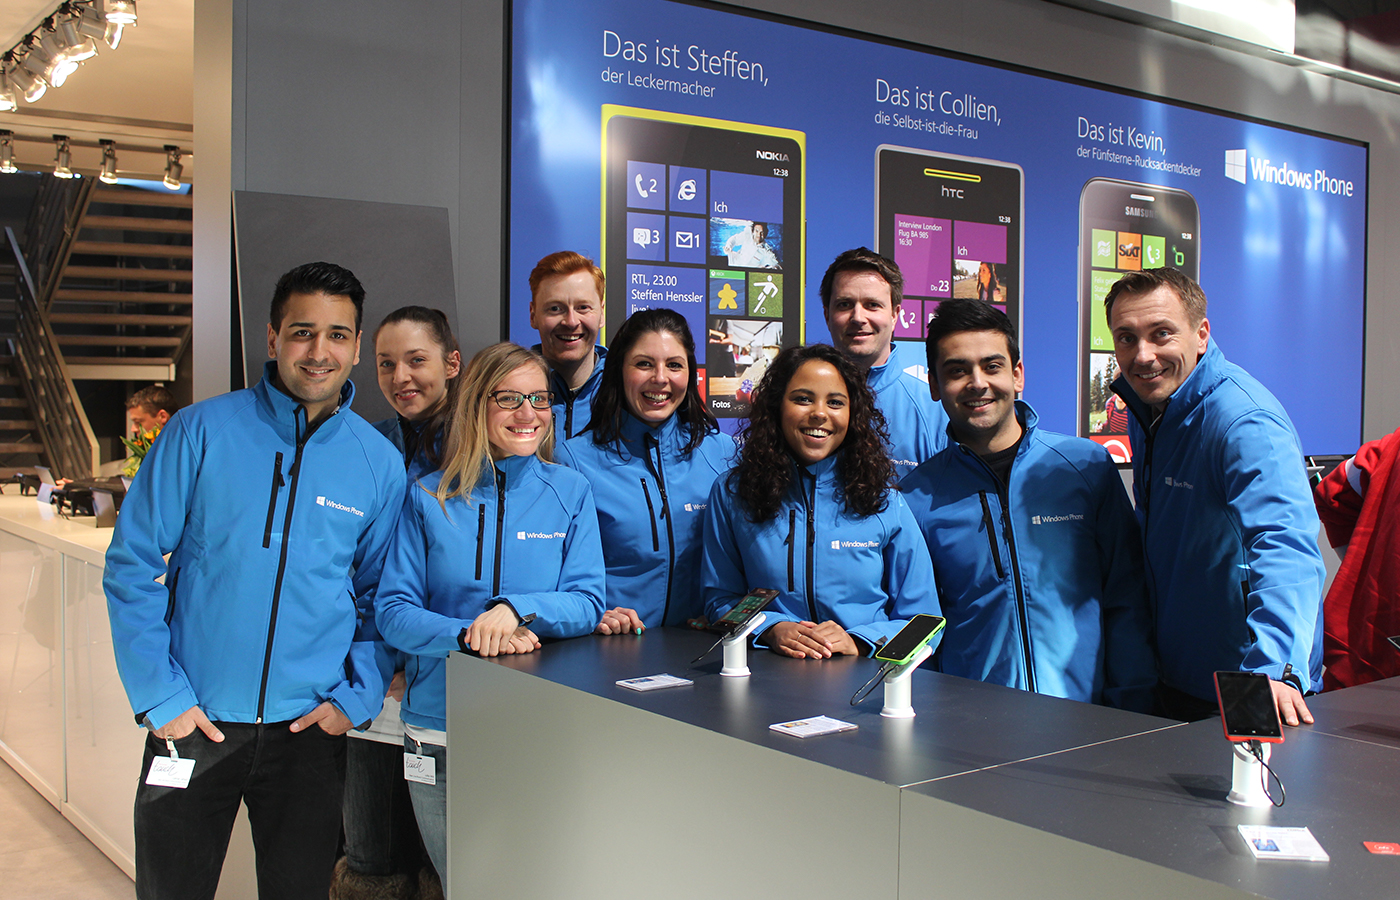 Windows Phone 8 – Cebit Team